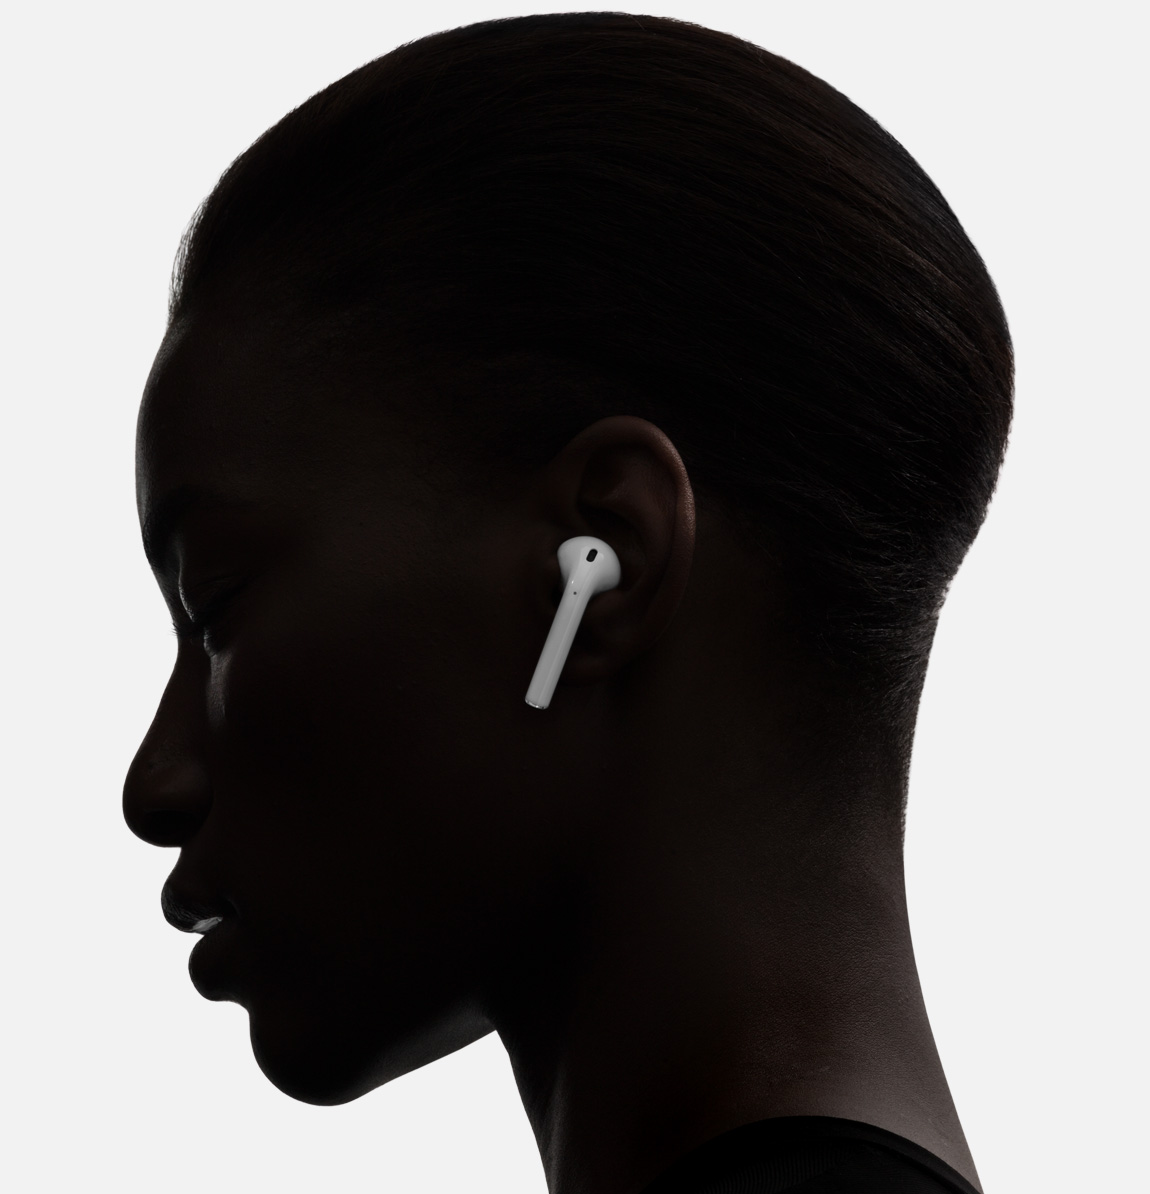 https://www.apple.com/v/airpods/e/images/overview/sound_large.jpg